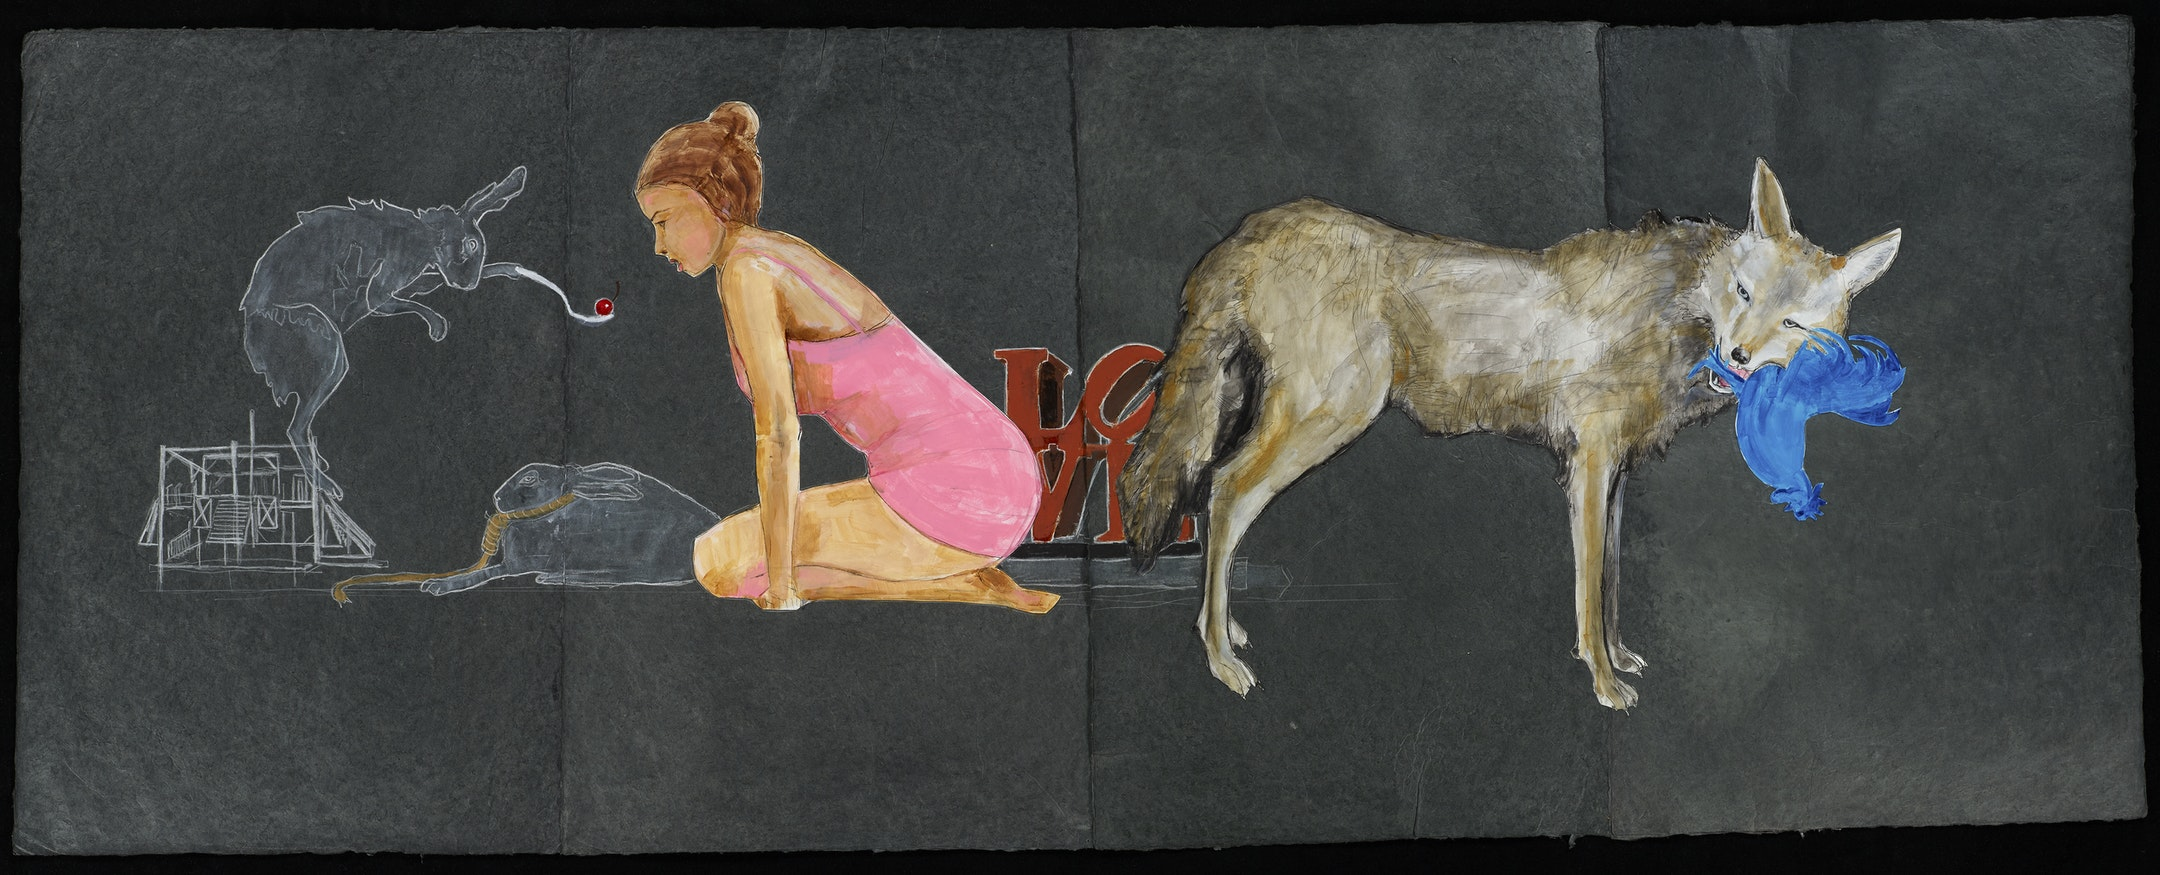 "A gray hare stands on a line drawing of scaffolding, holding out a white spoon with a red cherry to a kneeling young person with tan skin, brown hair, and a pink dress. A hare with a noose around its neck sits between them. Red block letters with the word ""LOVE"" stand in the background, beside a snarling coyote holding a blue rooster in its mouth."